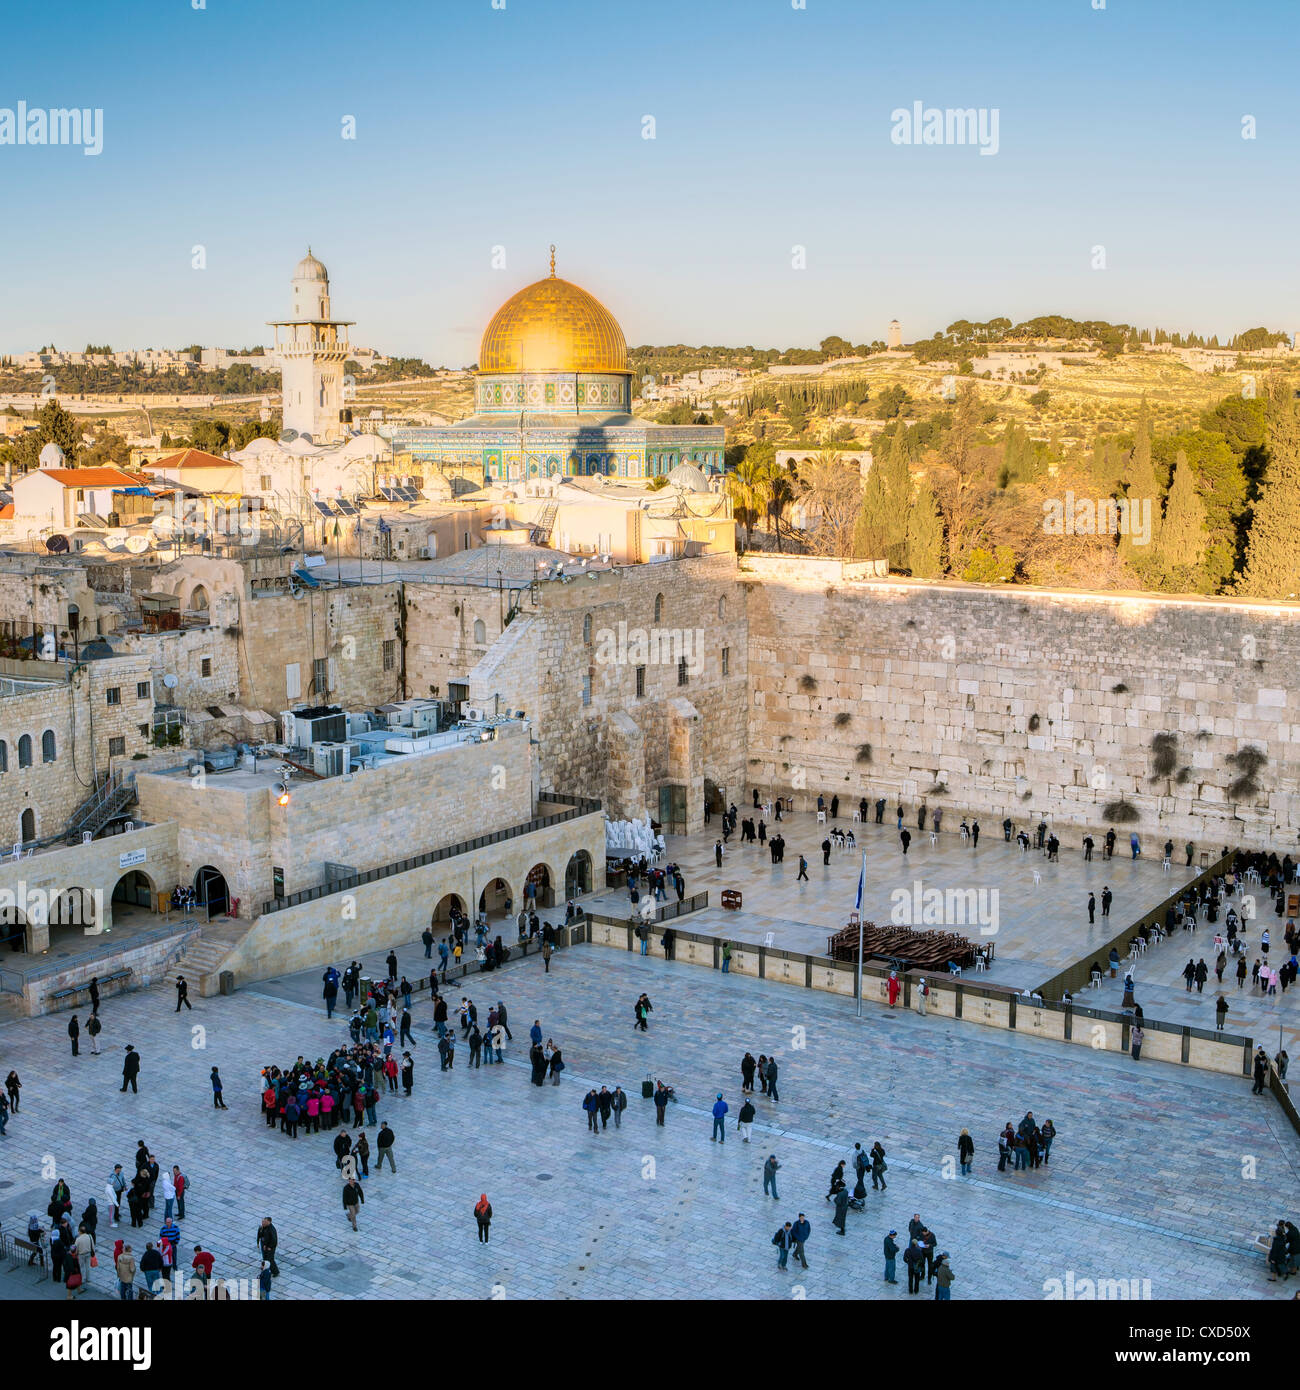 Jewish Quarter of the Western Wall Plaza, Old City, UNESCO World Heritage Site, Jerusalem, Israel, Middle East - Stock Image